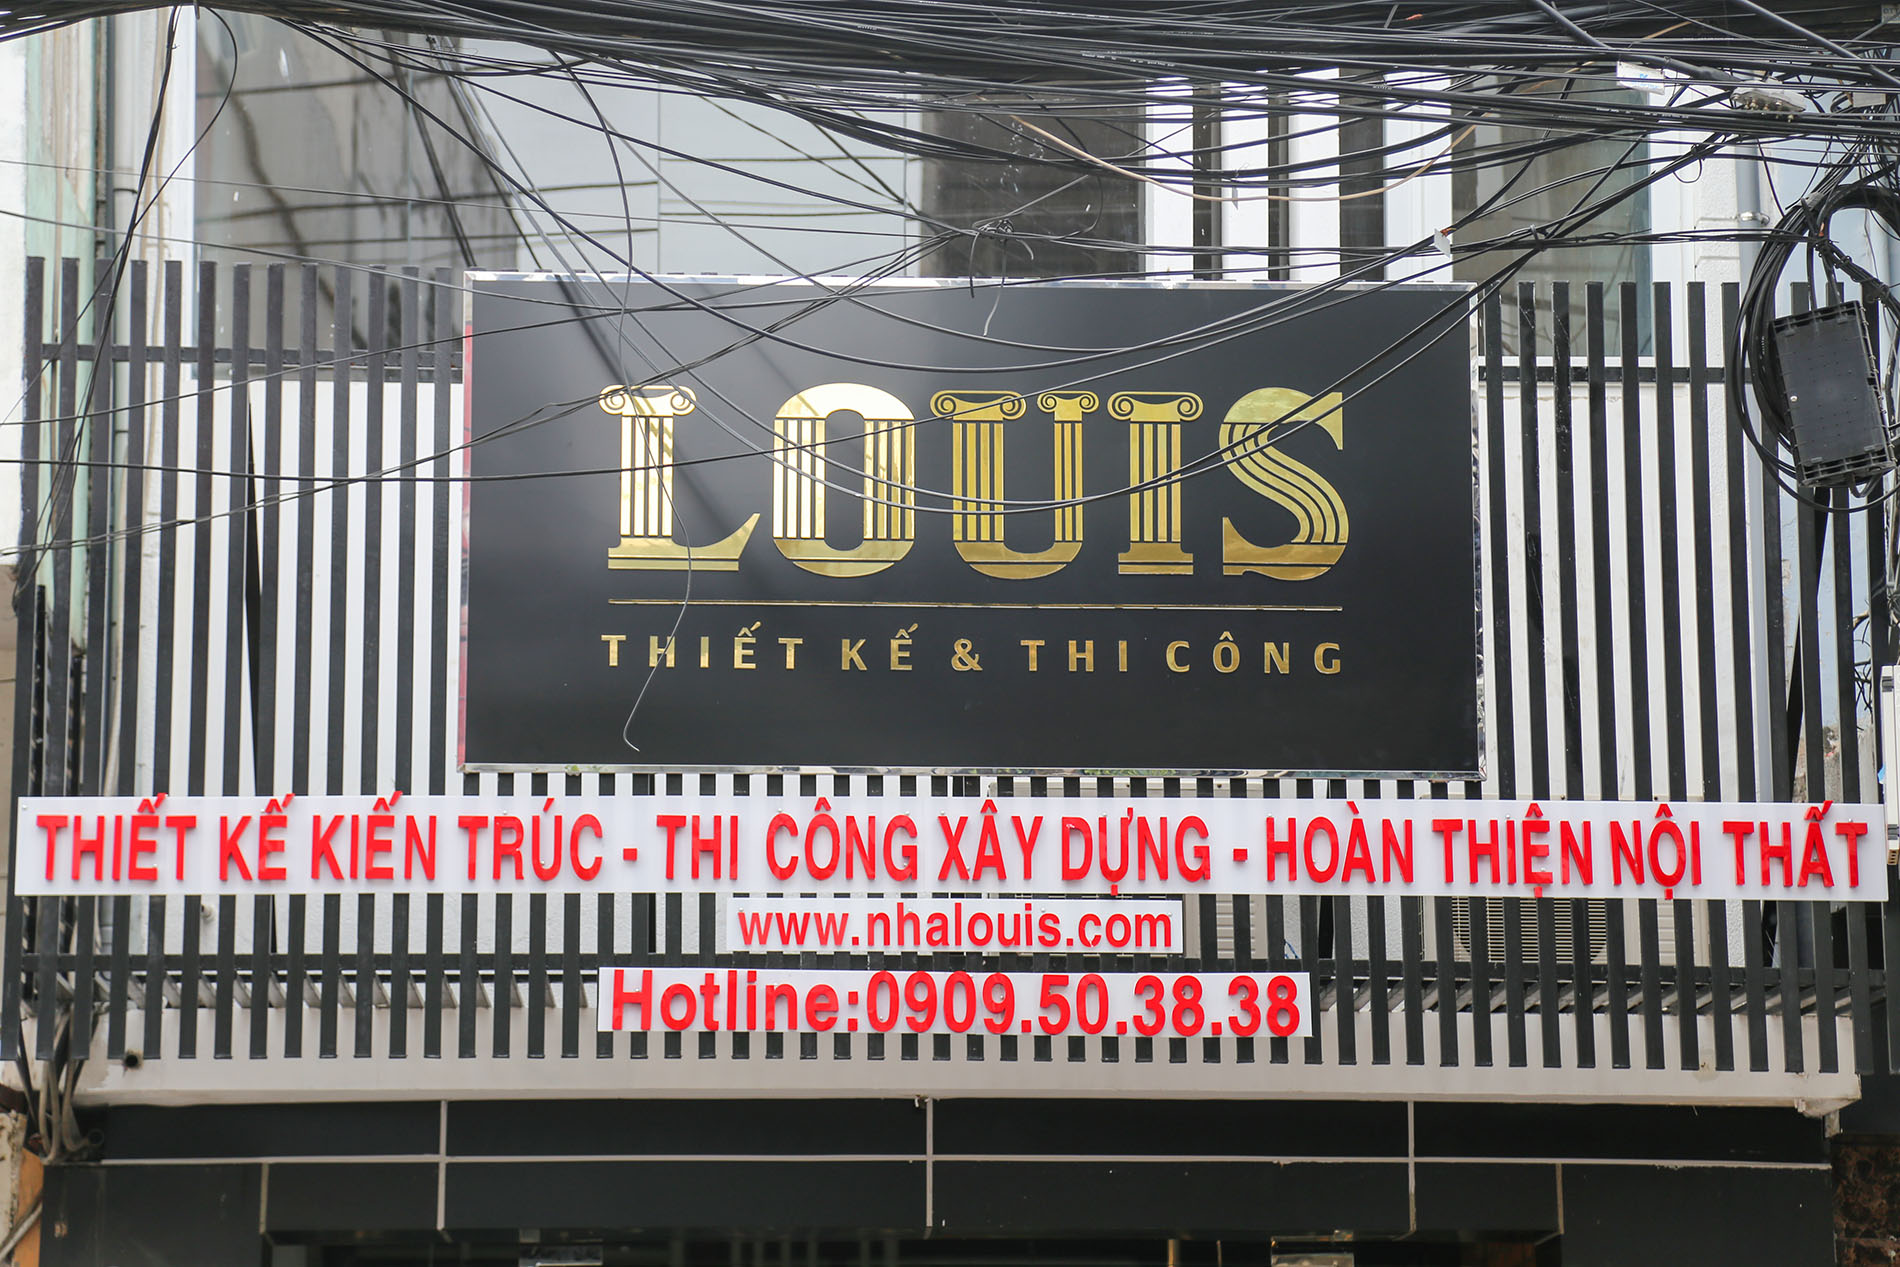 Cty thiết kế xây dựng